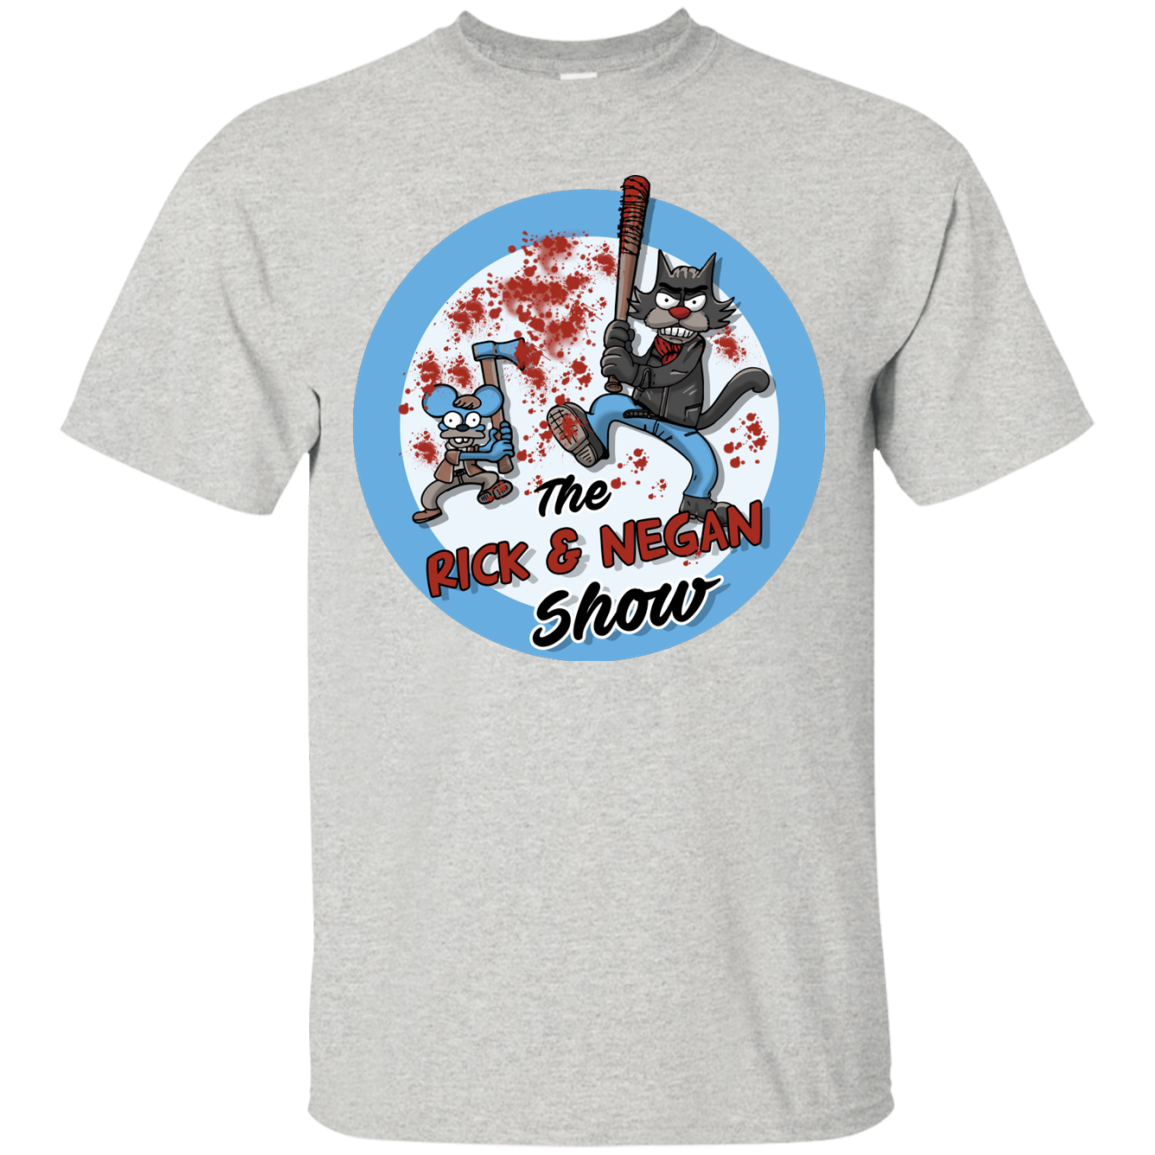 Walking Dead: The Rick and Negan Show T-Shirt, Hoodies